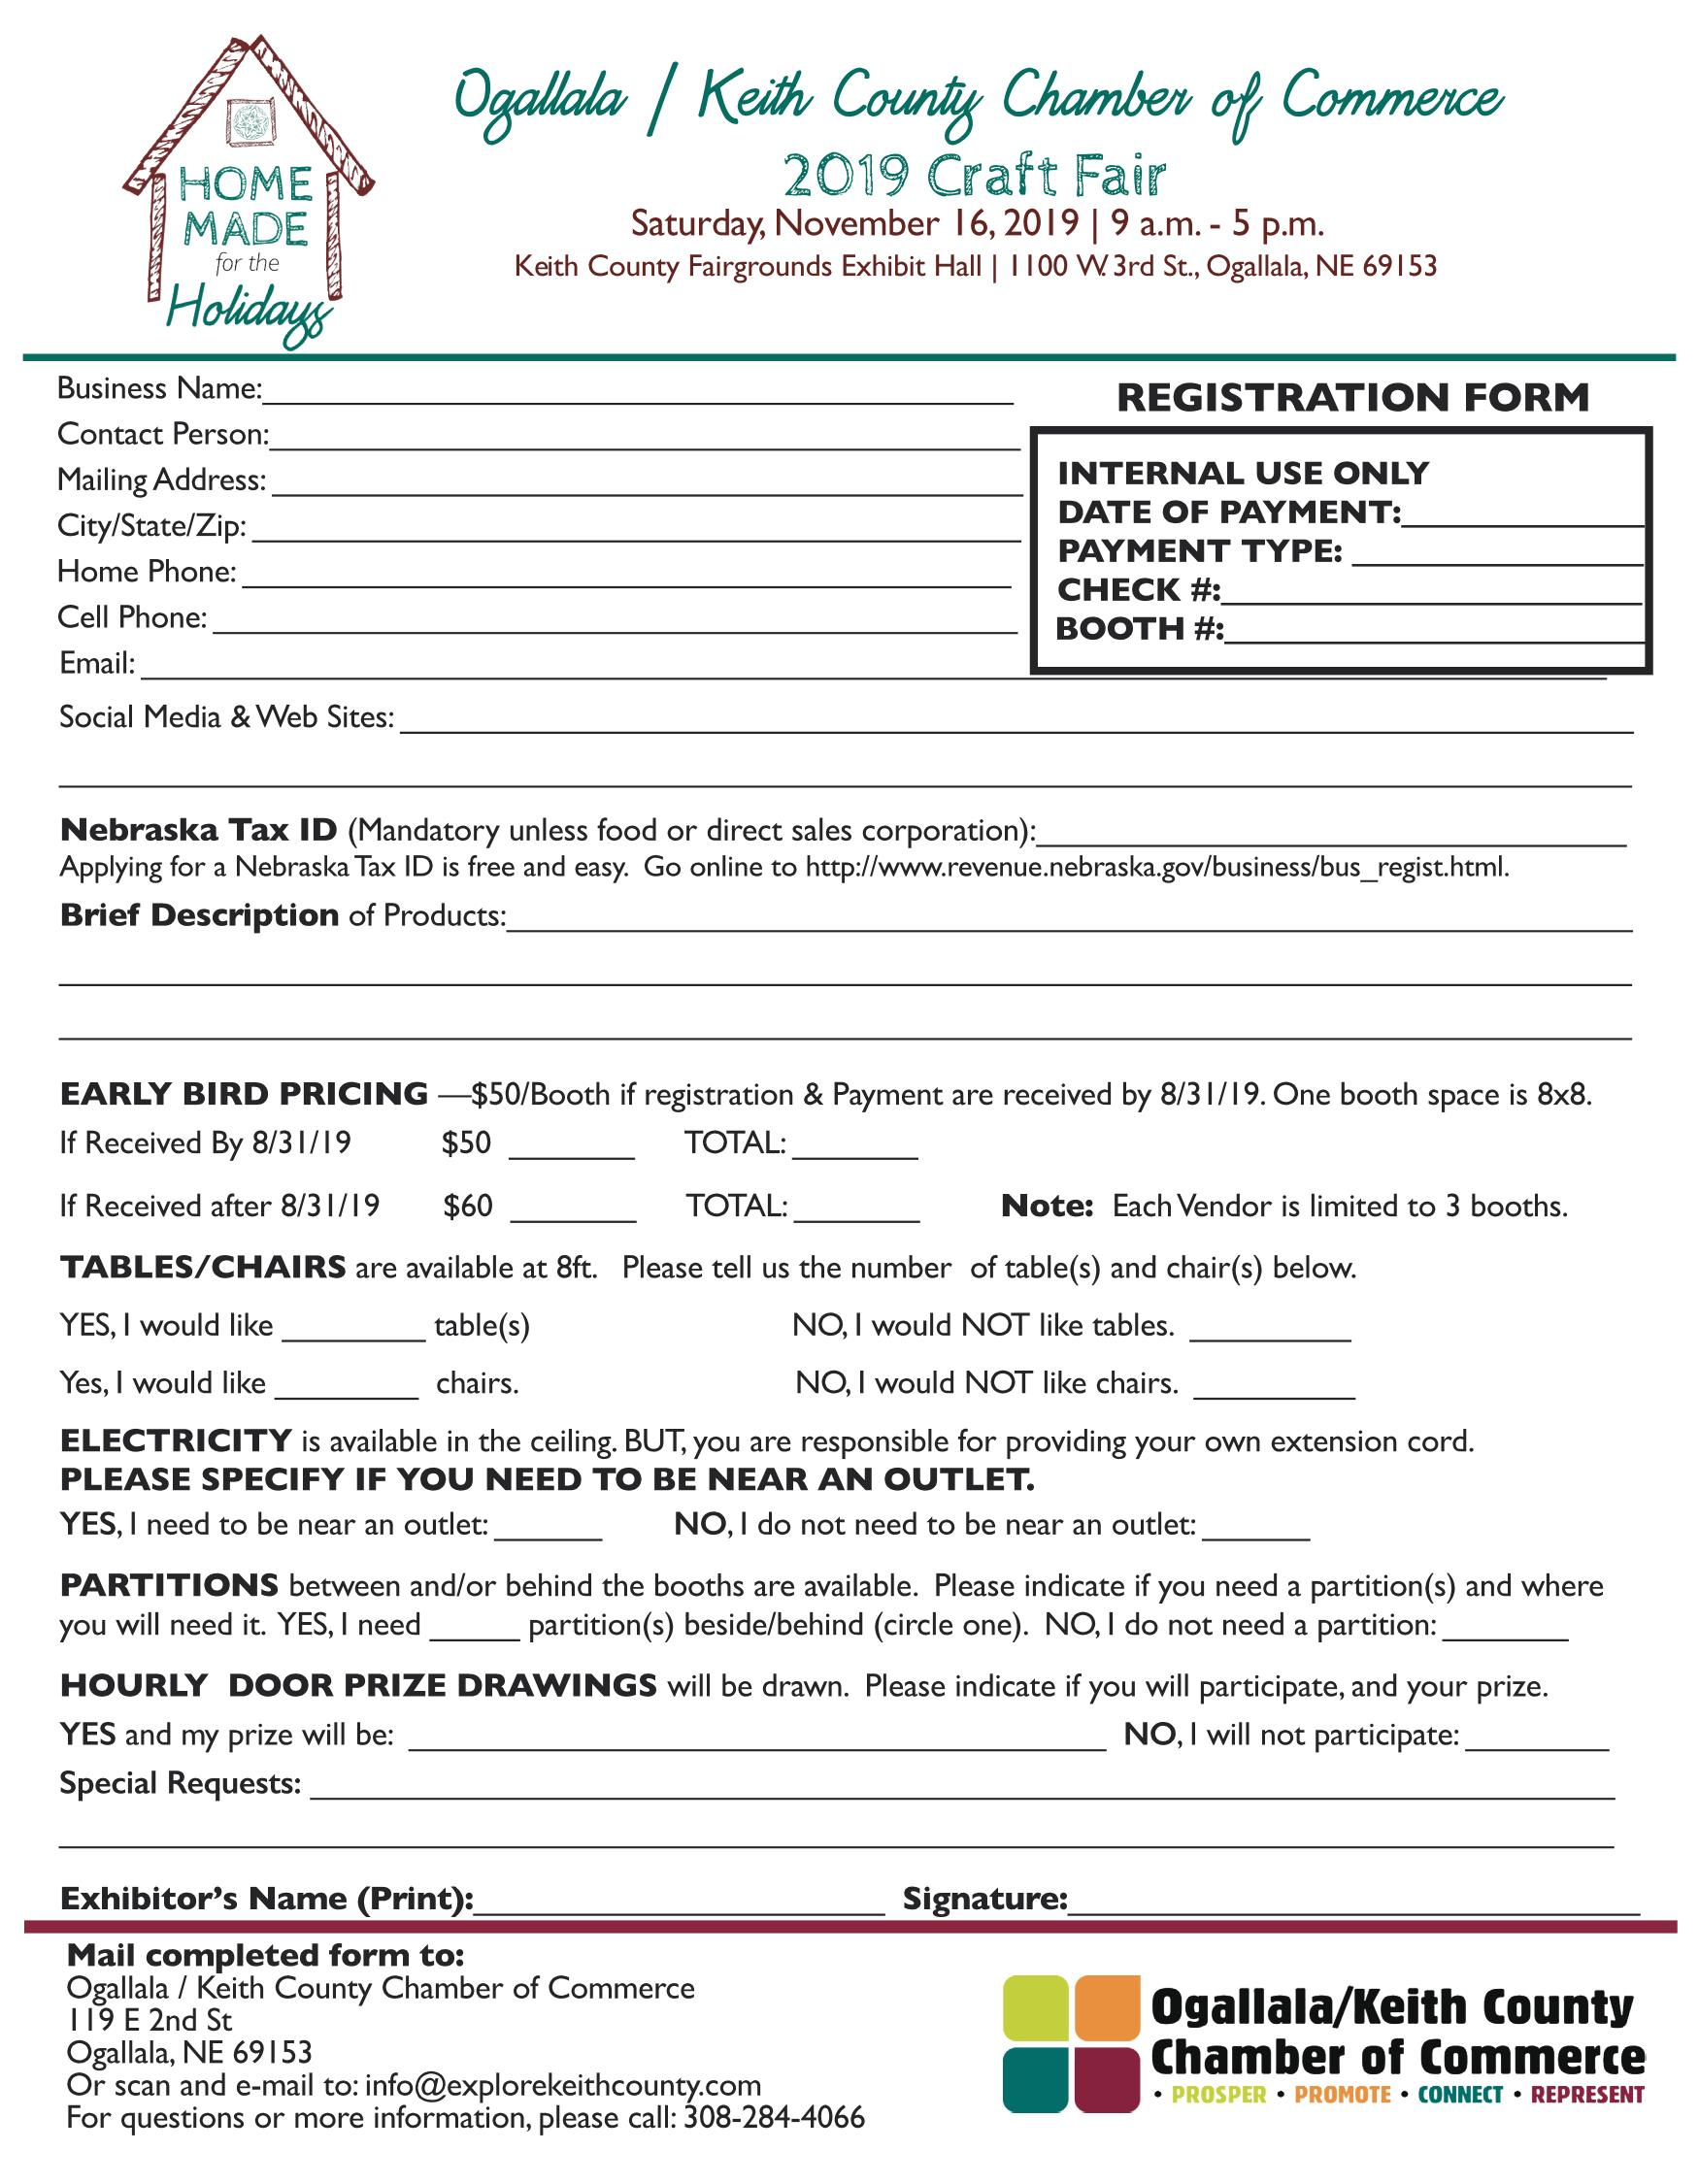 Craft-Fair-Registration-Form-(1)_Page_1.jpeg